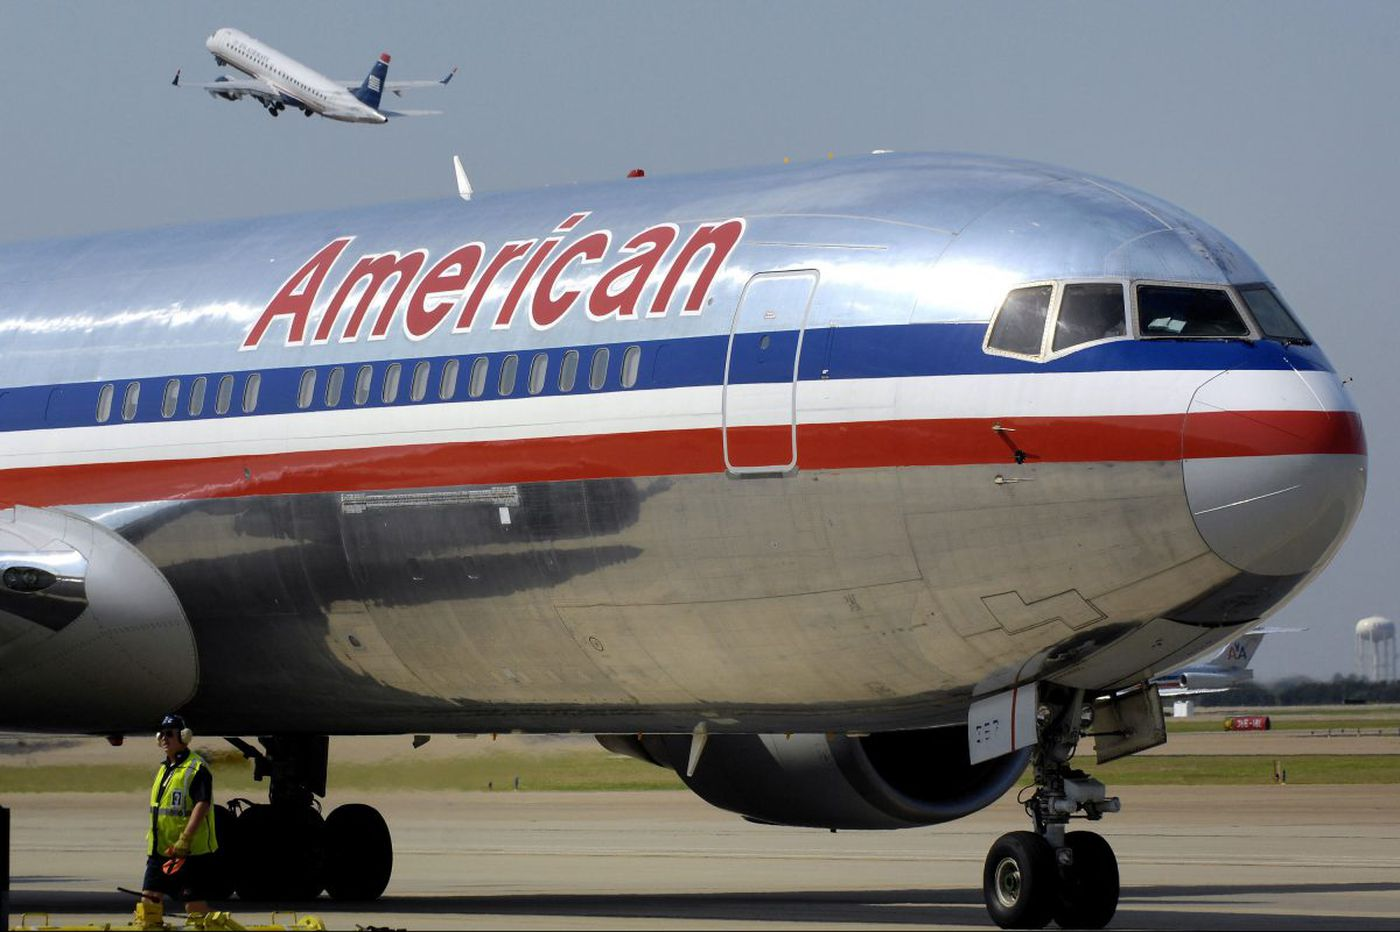 American Airlines says it's eager to work with NAACP to 'listen and learn together'